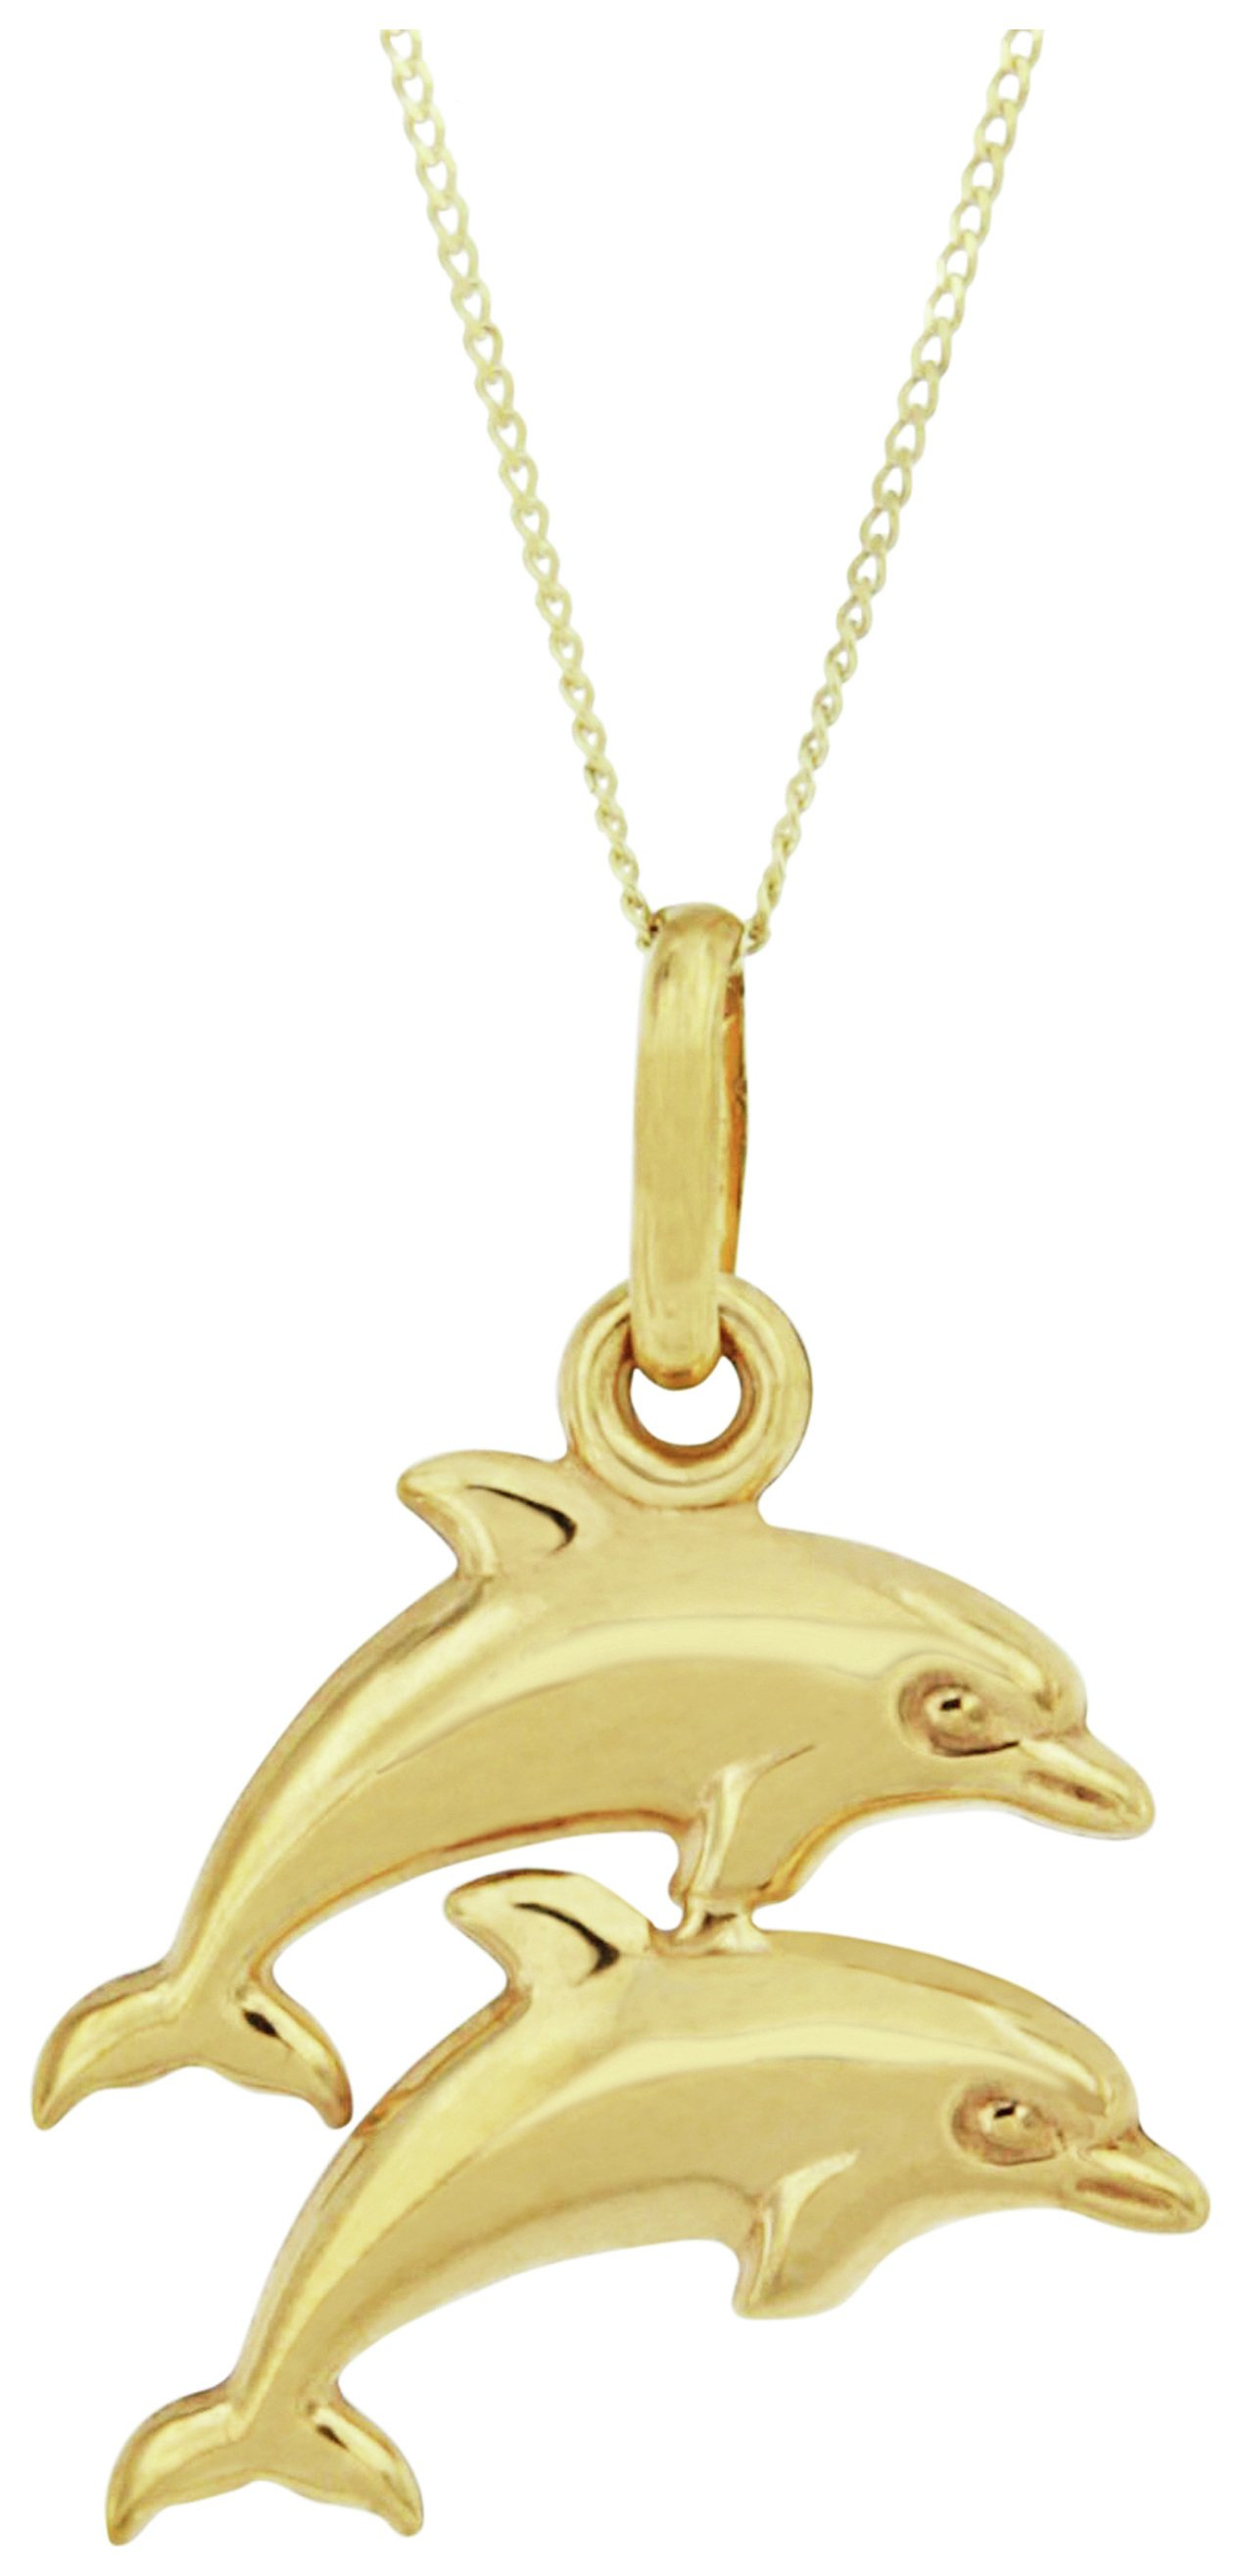 Image of Bracci - 9 Carat Gold - Double Dolphin Solid Look Pendant Necklace.